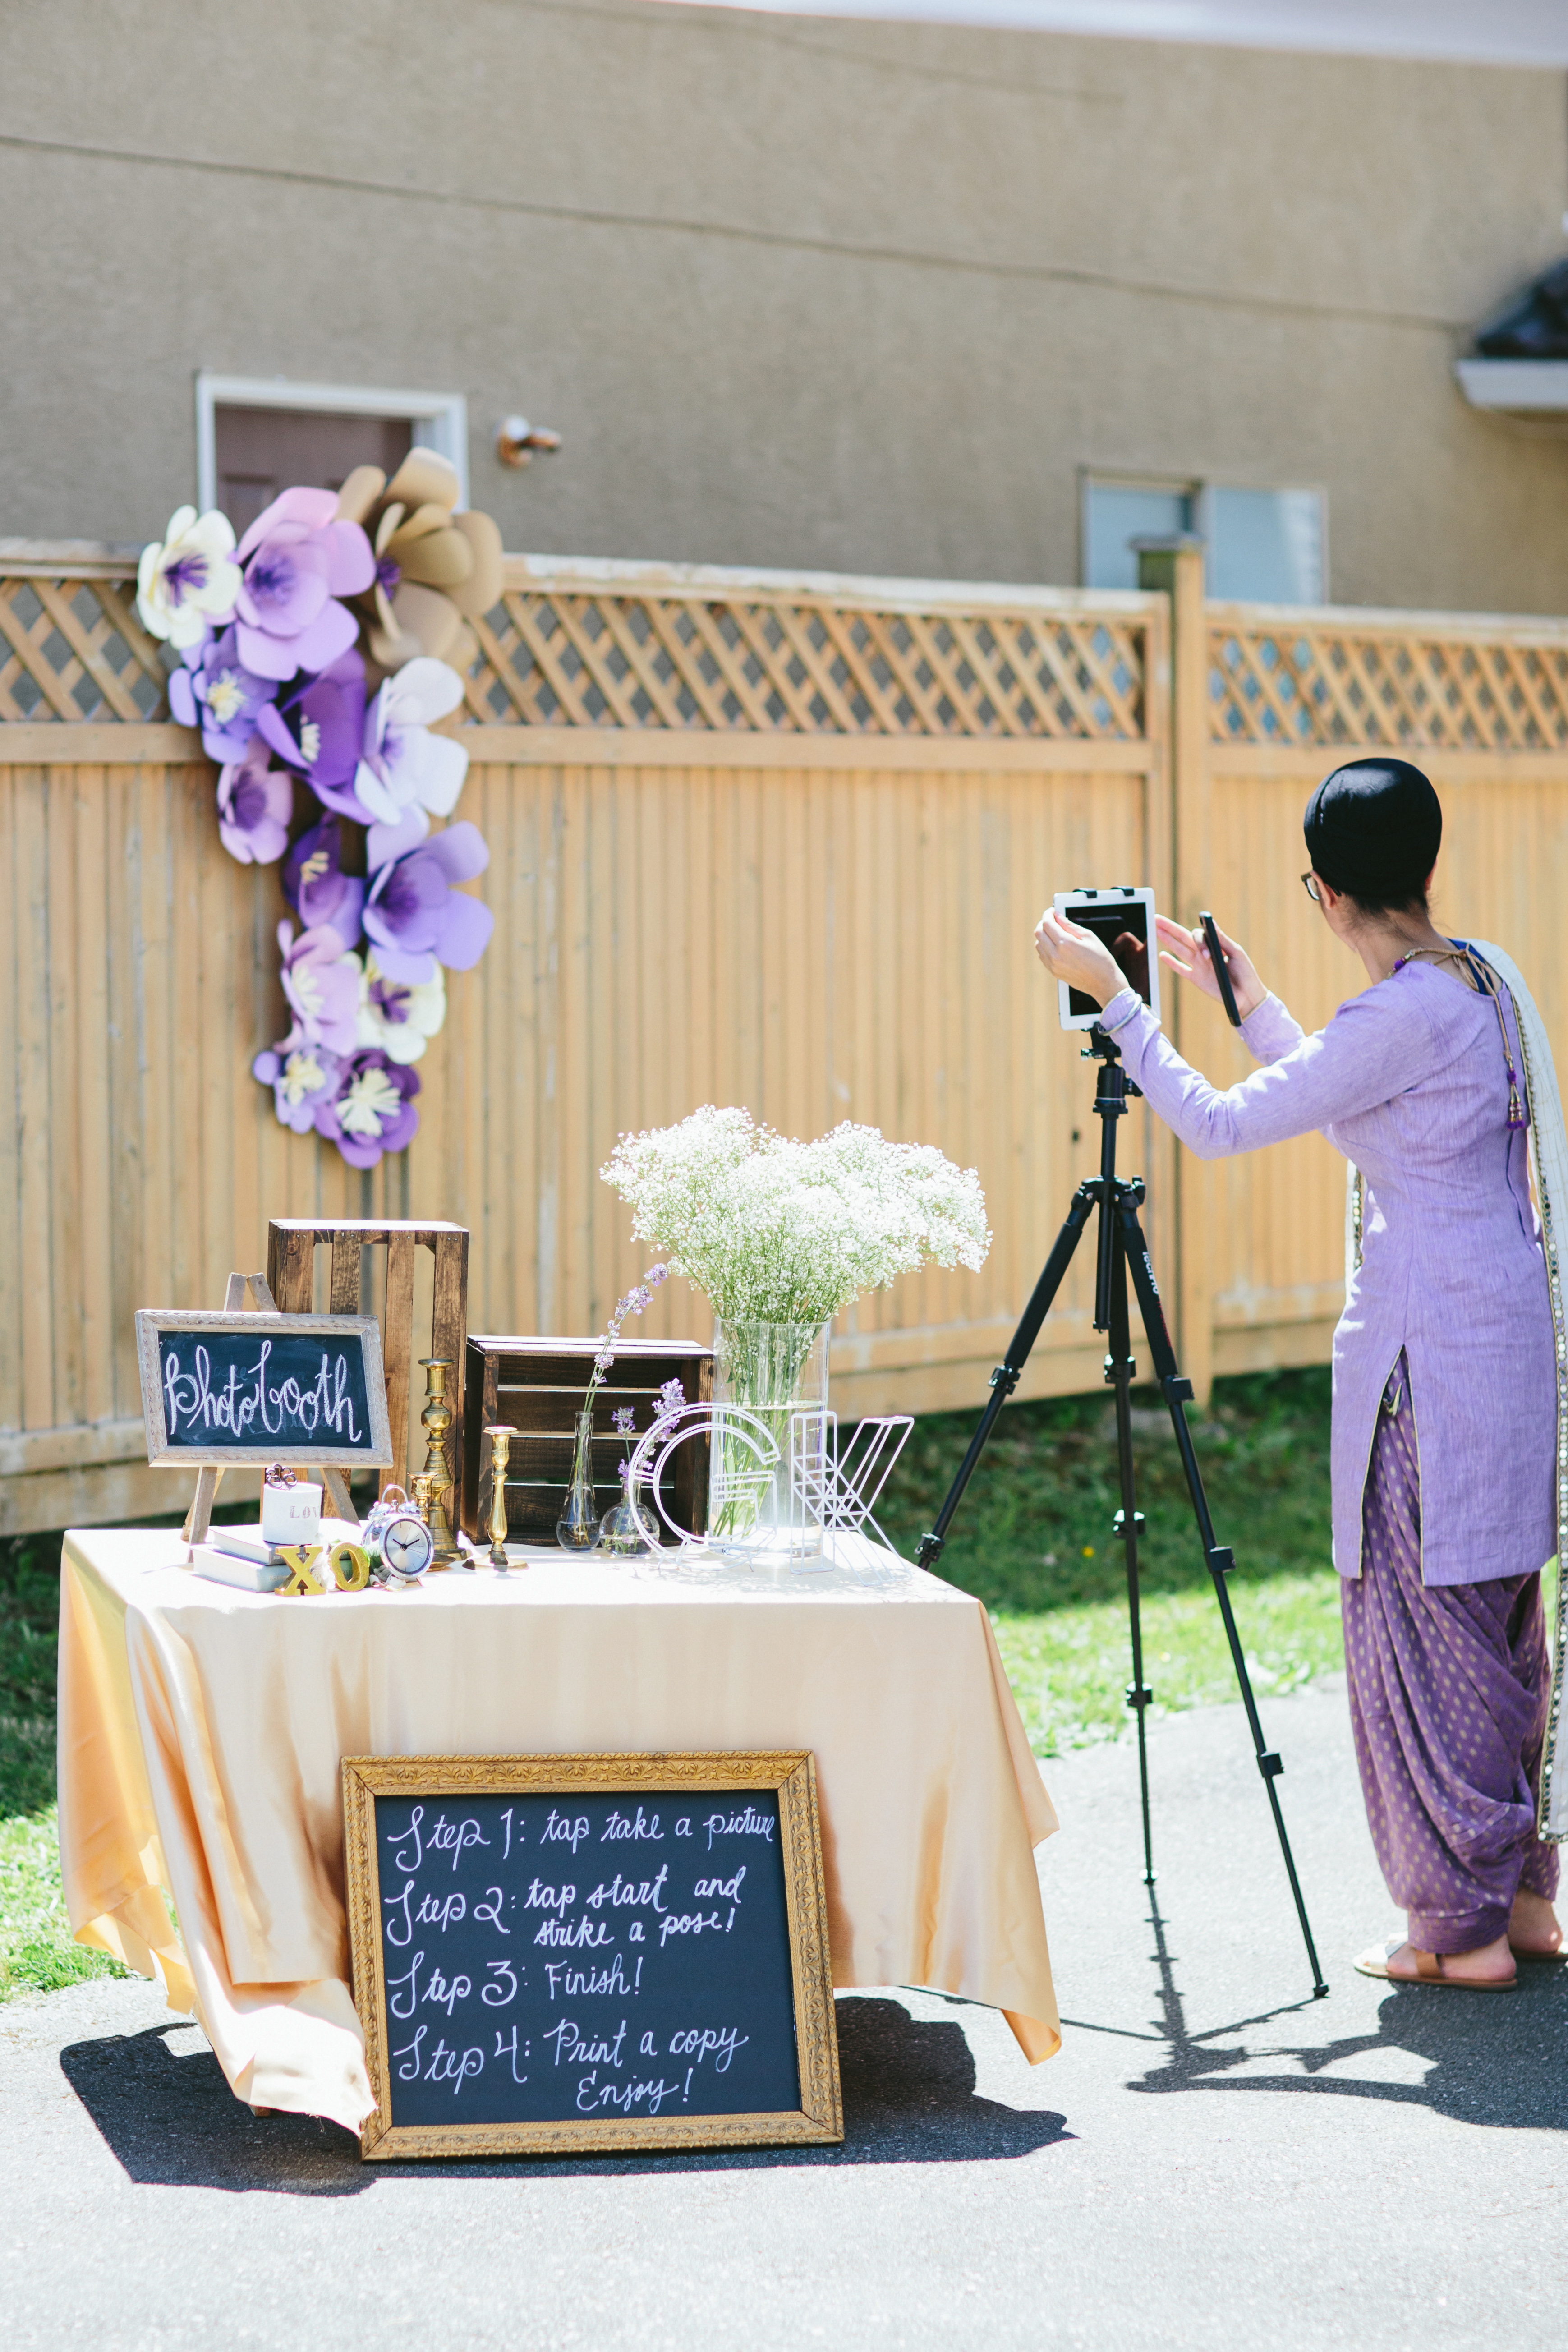 The Ultimate Easy Diy Photo Booth For Your Wedding Bridal Shower Birthday Party That